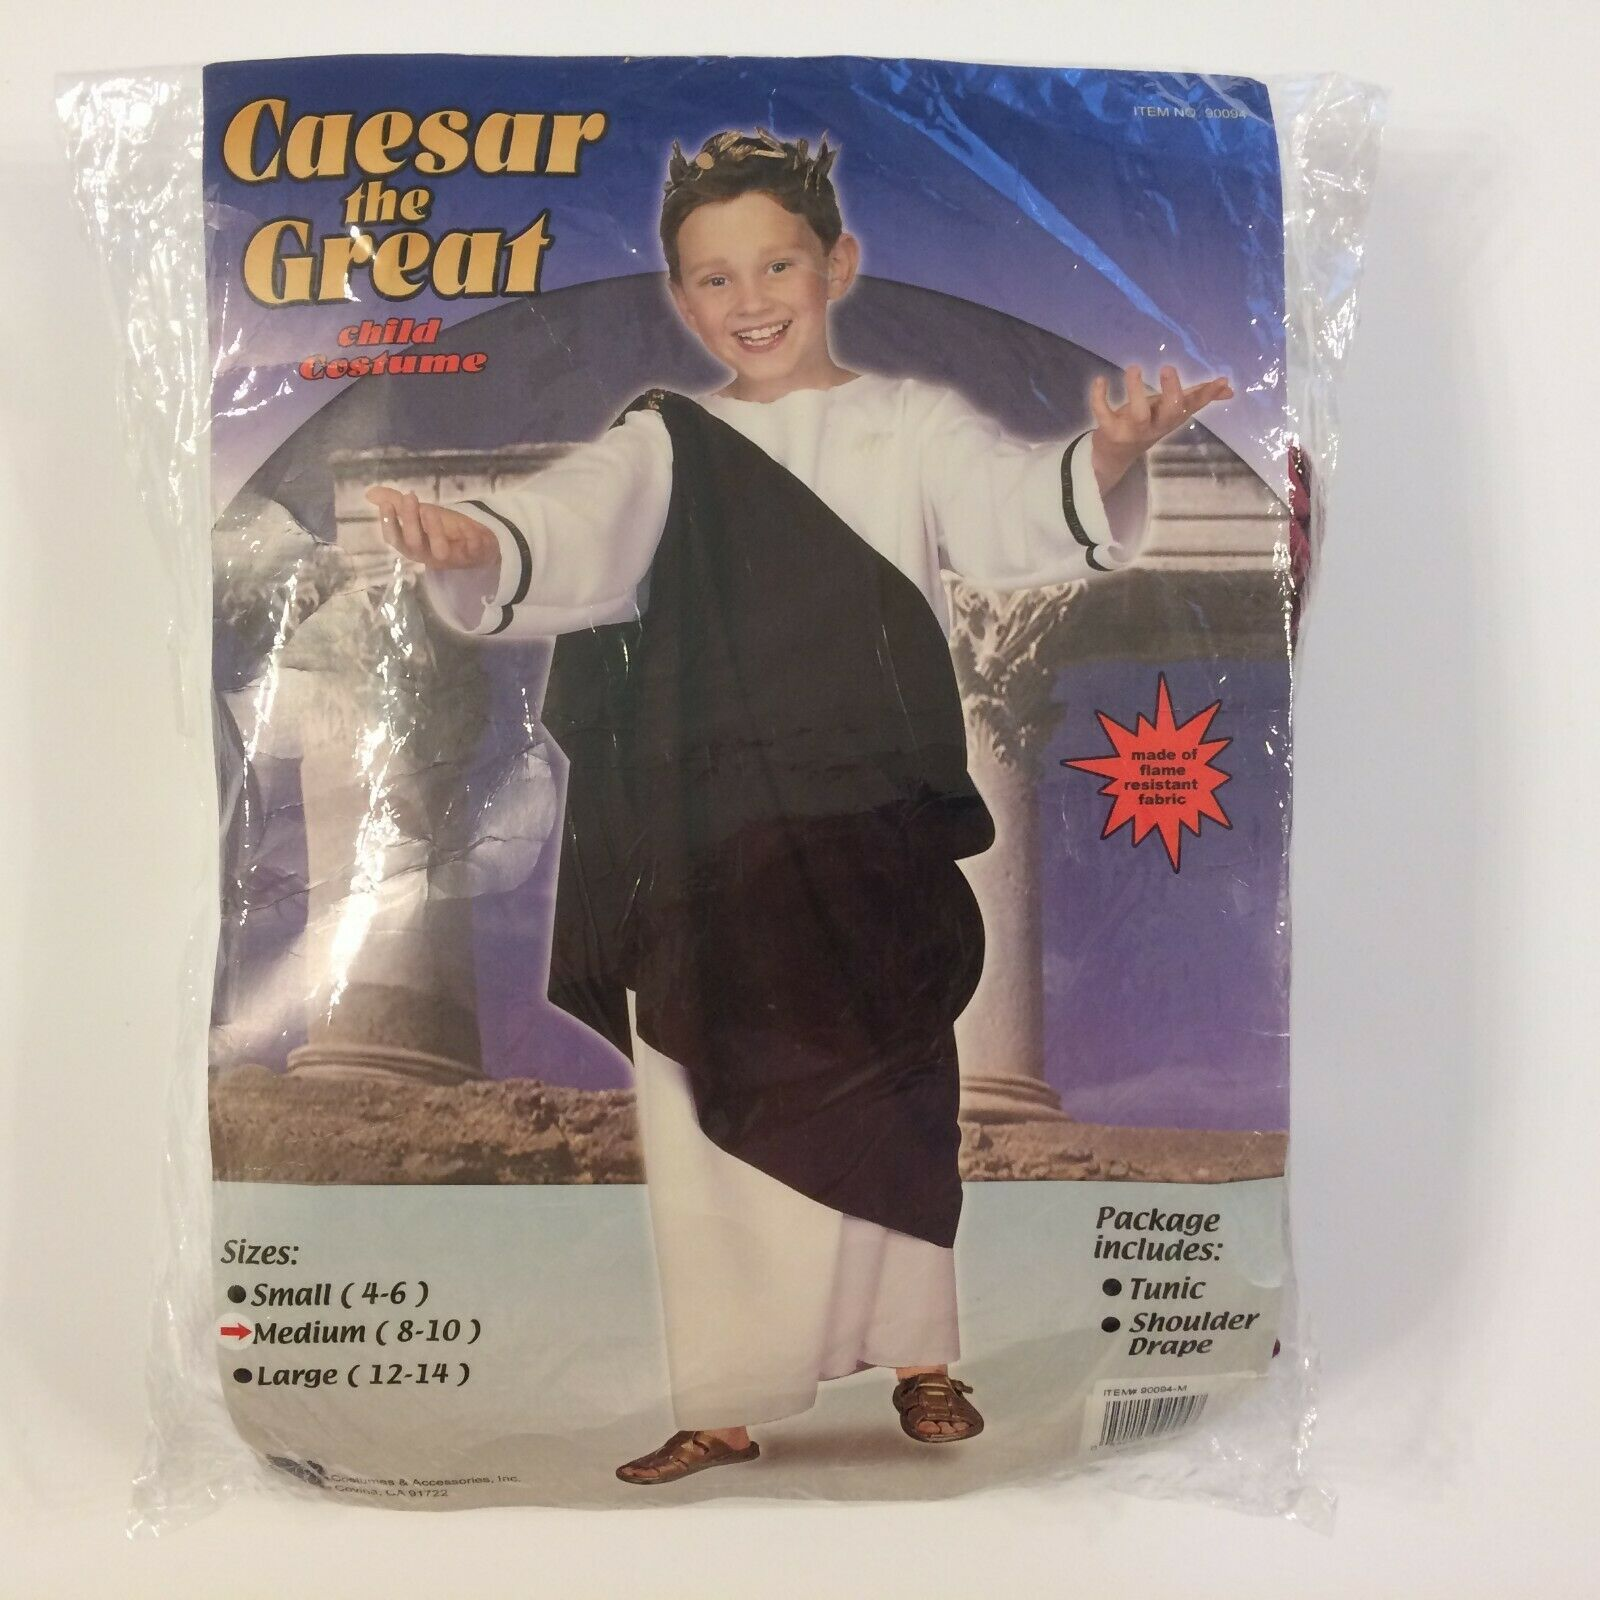 Primary image for Caesar the Great Child Costume Size Medium (8-10) White Toga Greek Robe & Drape